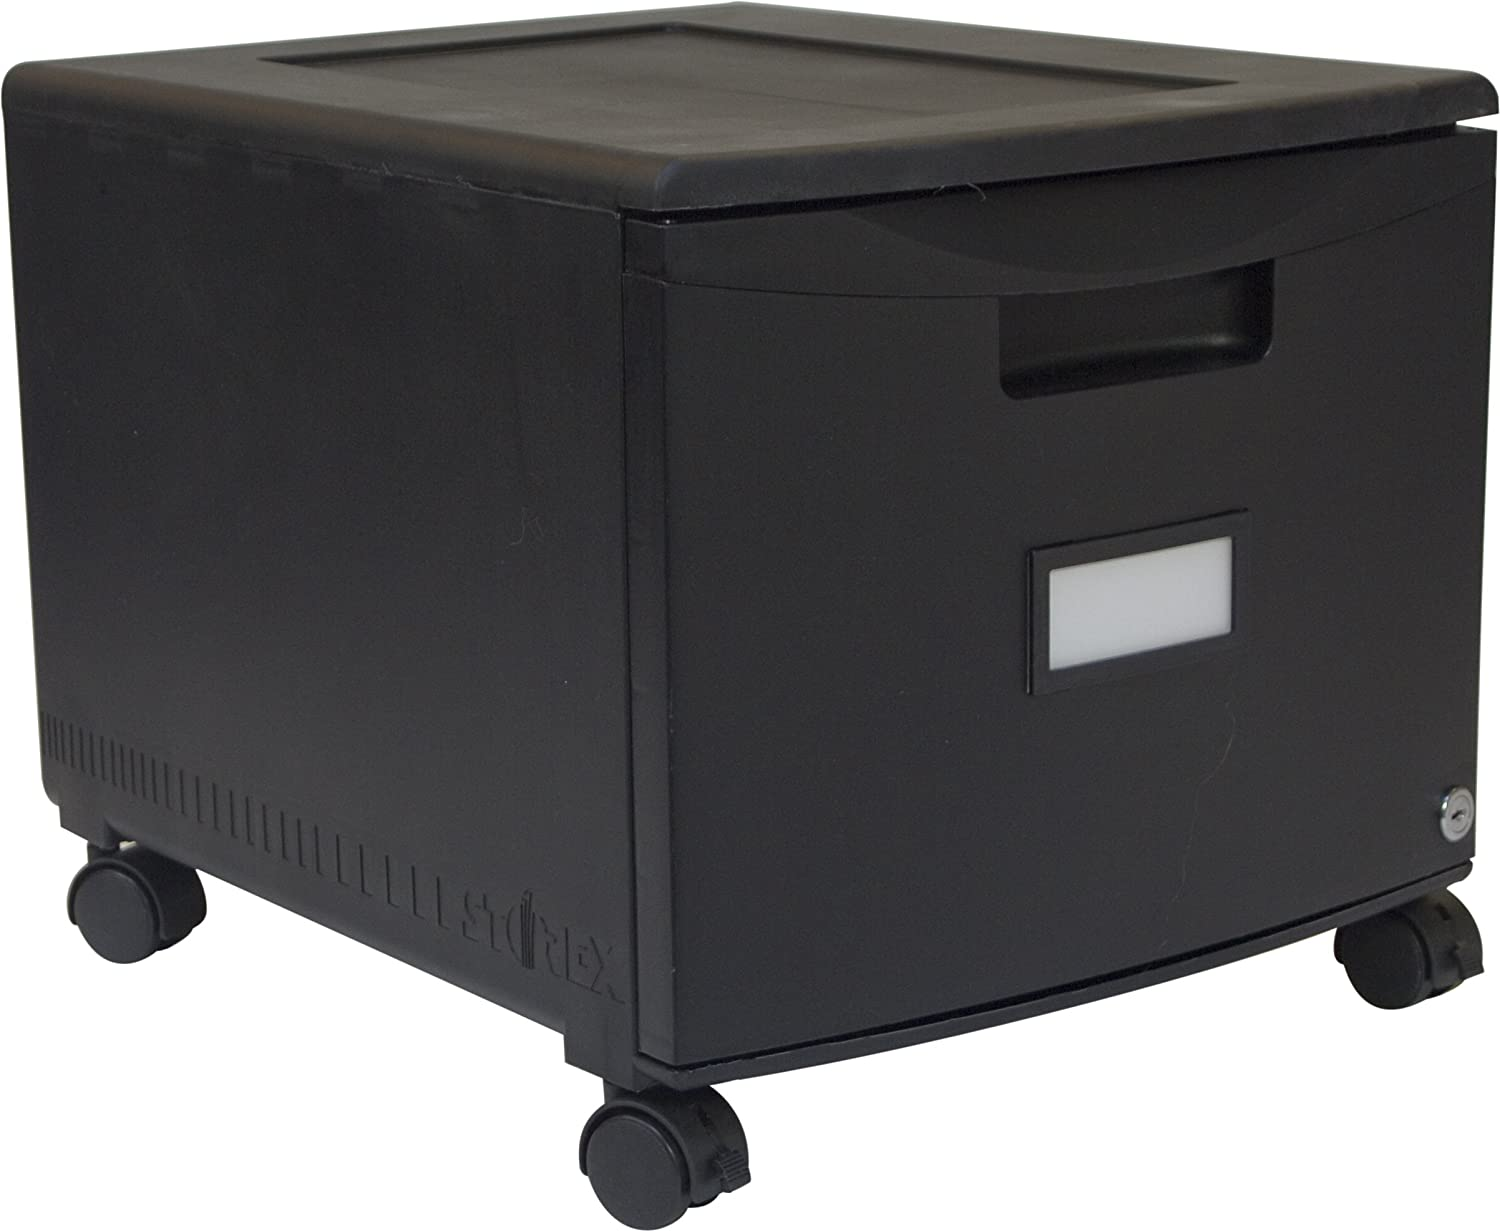 Awesome Amazon.com : Storex Single Drawer Mini File Cabinet With Lock And Casters,  18.25 X 14.75 X 12.75 Inches, Black (61264B01C) : Office Products